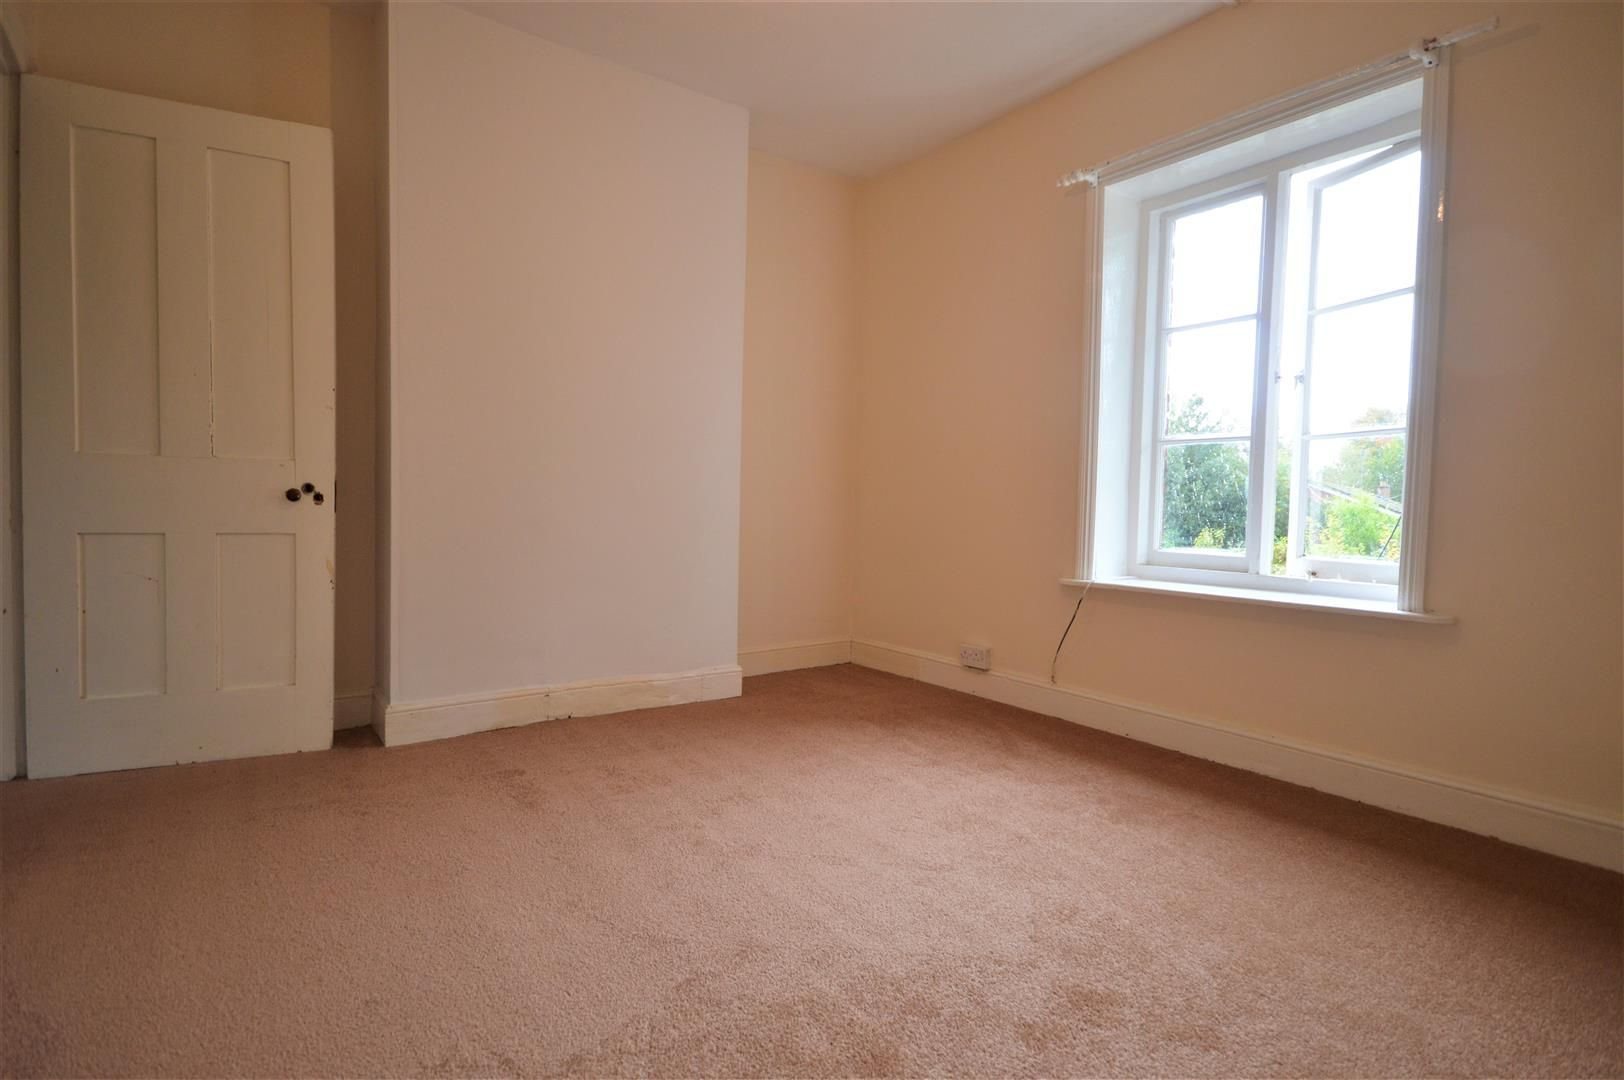 2 bed end of terrace for sale in Eardisland  - Property Image 5